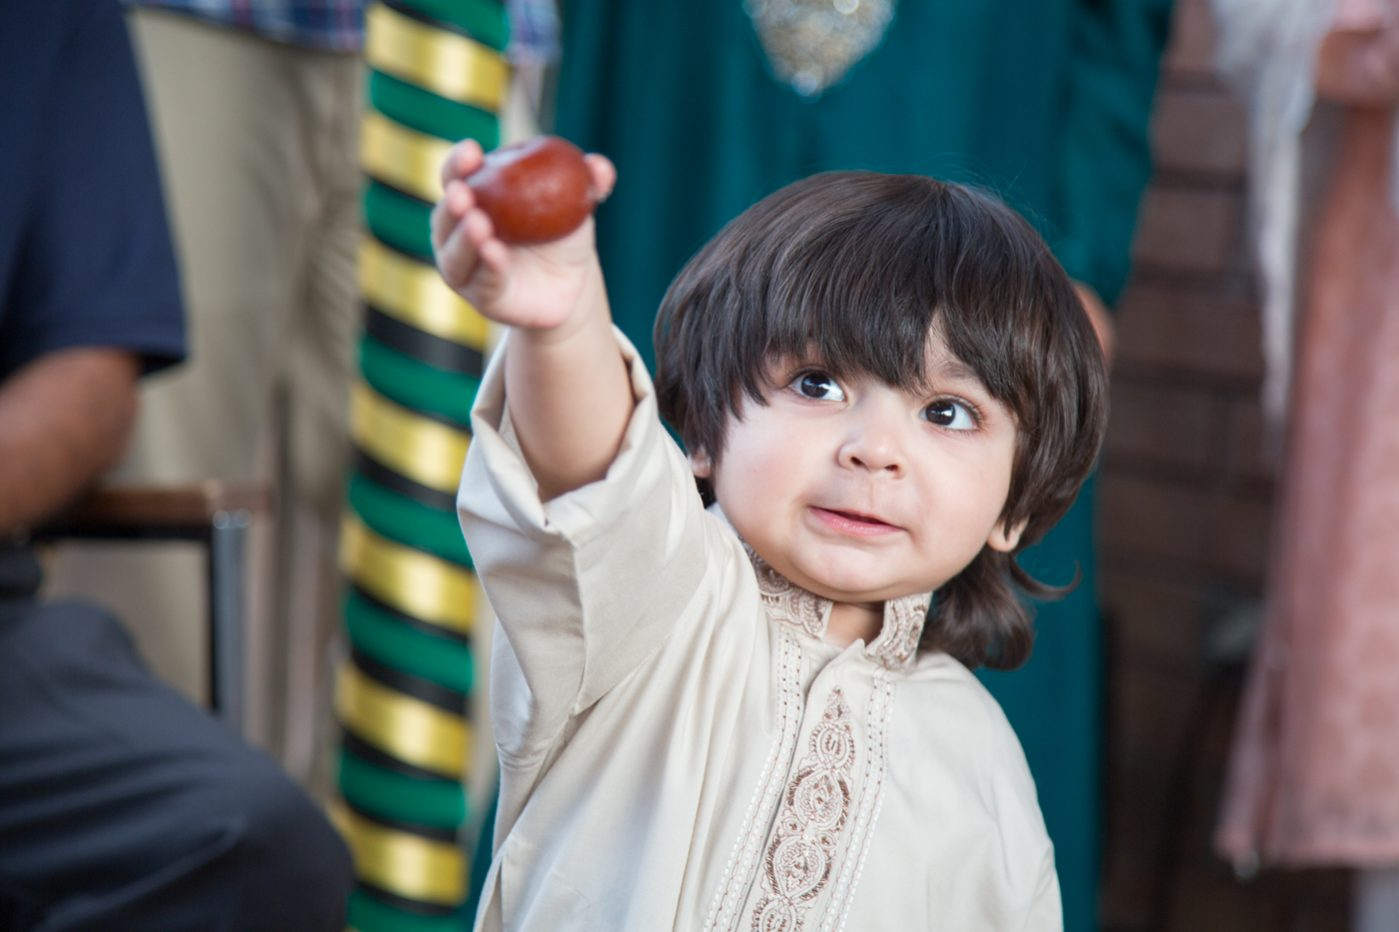 Cute boy holding up a gulab jamun, South Asian dessert.